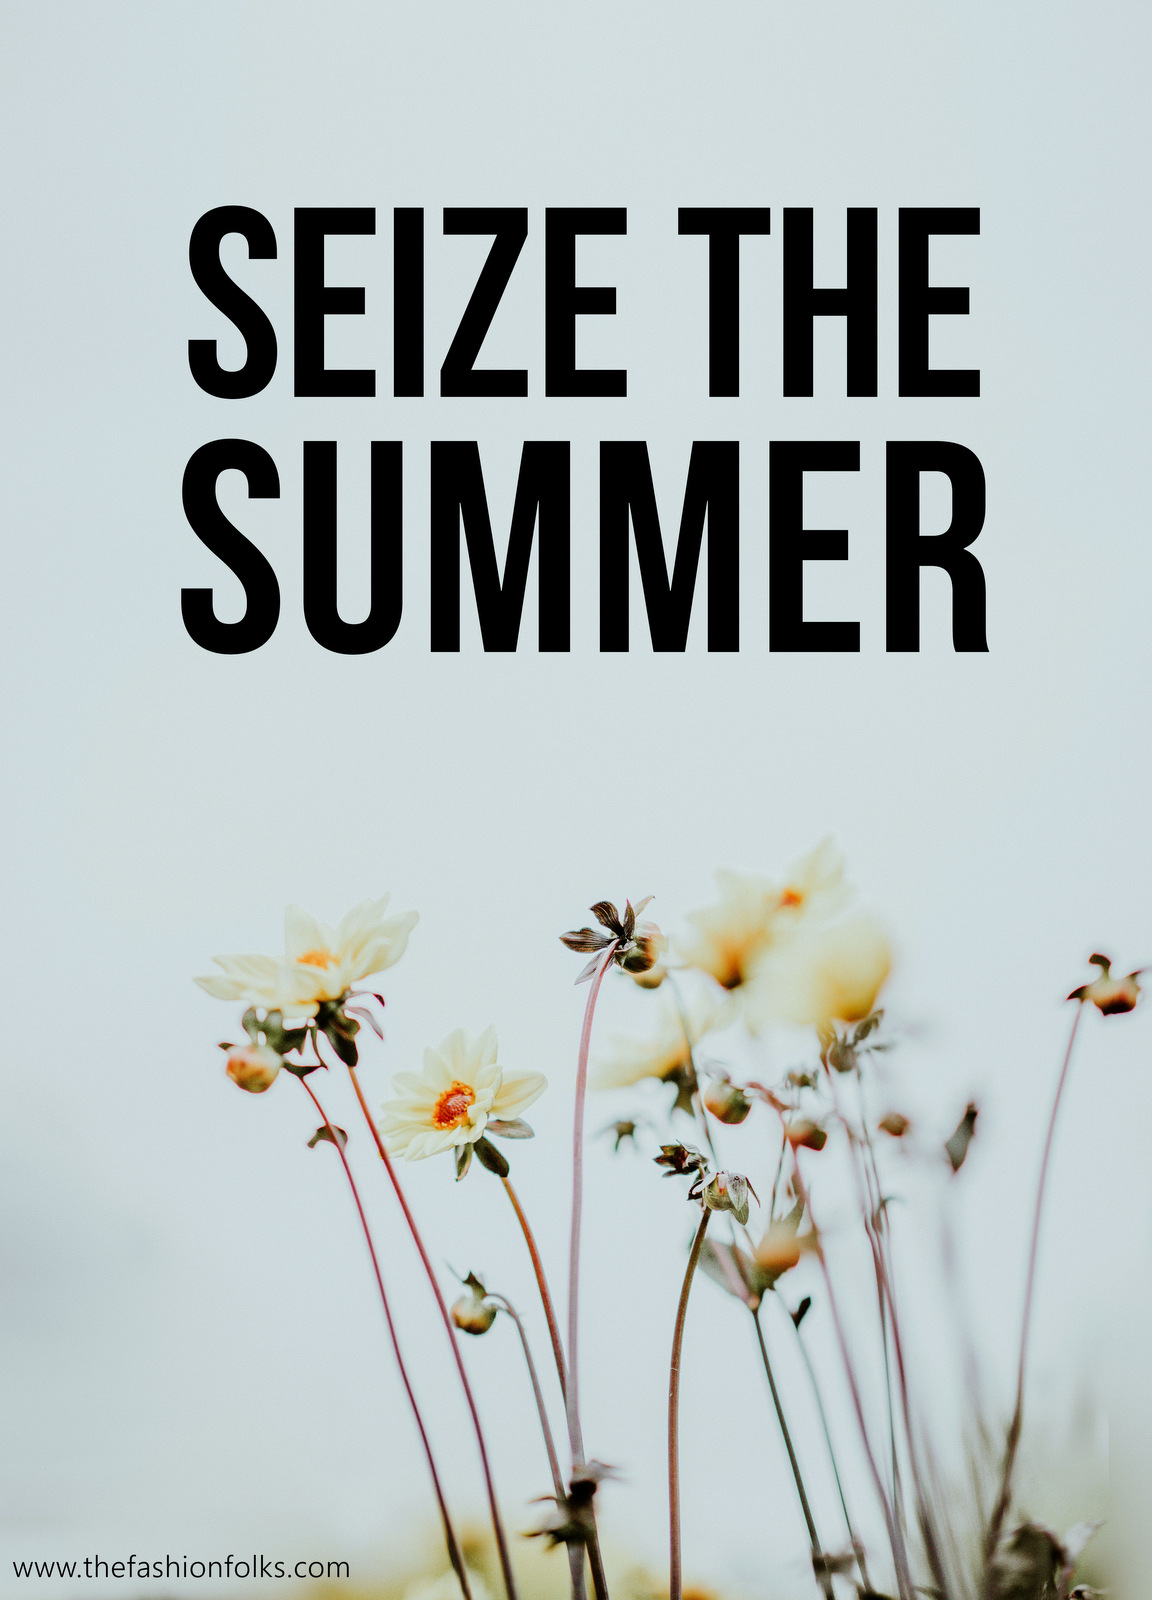 Seize The Summer